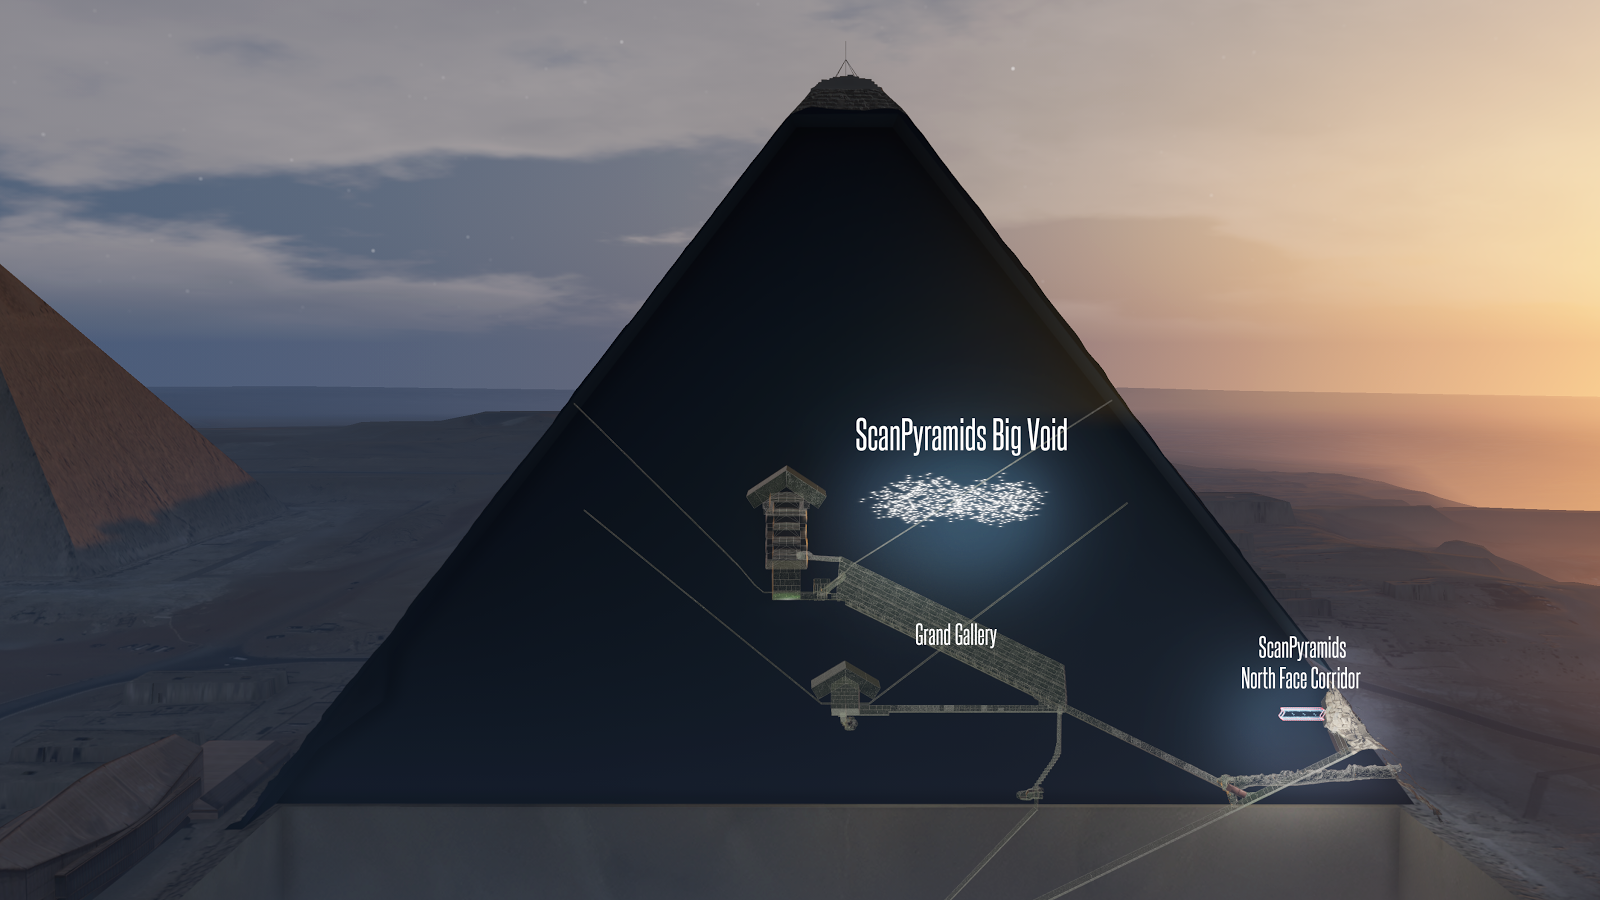 The void in the Pyramid of Giza as featured in Assassin's Creed Origins